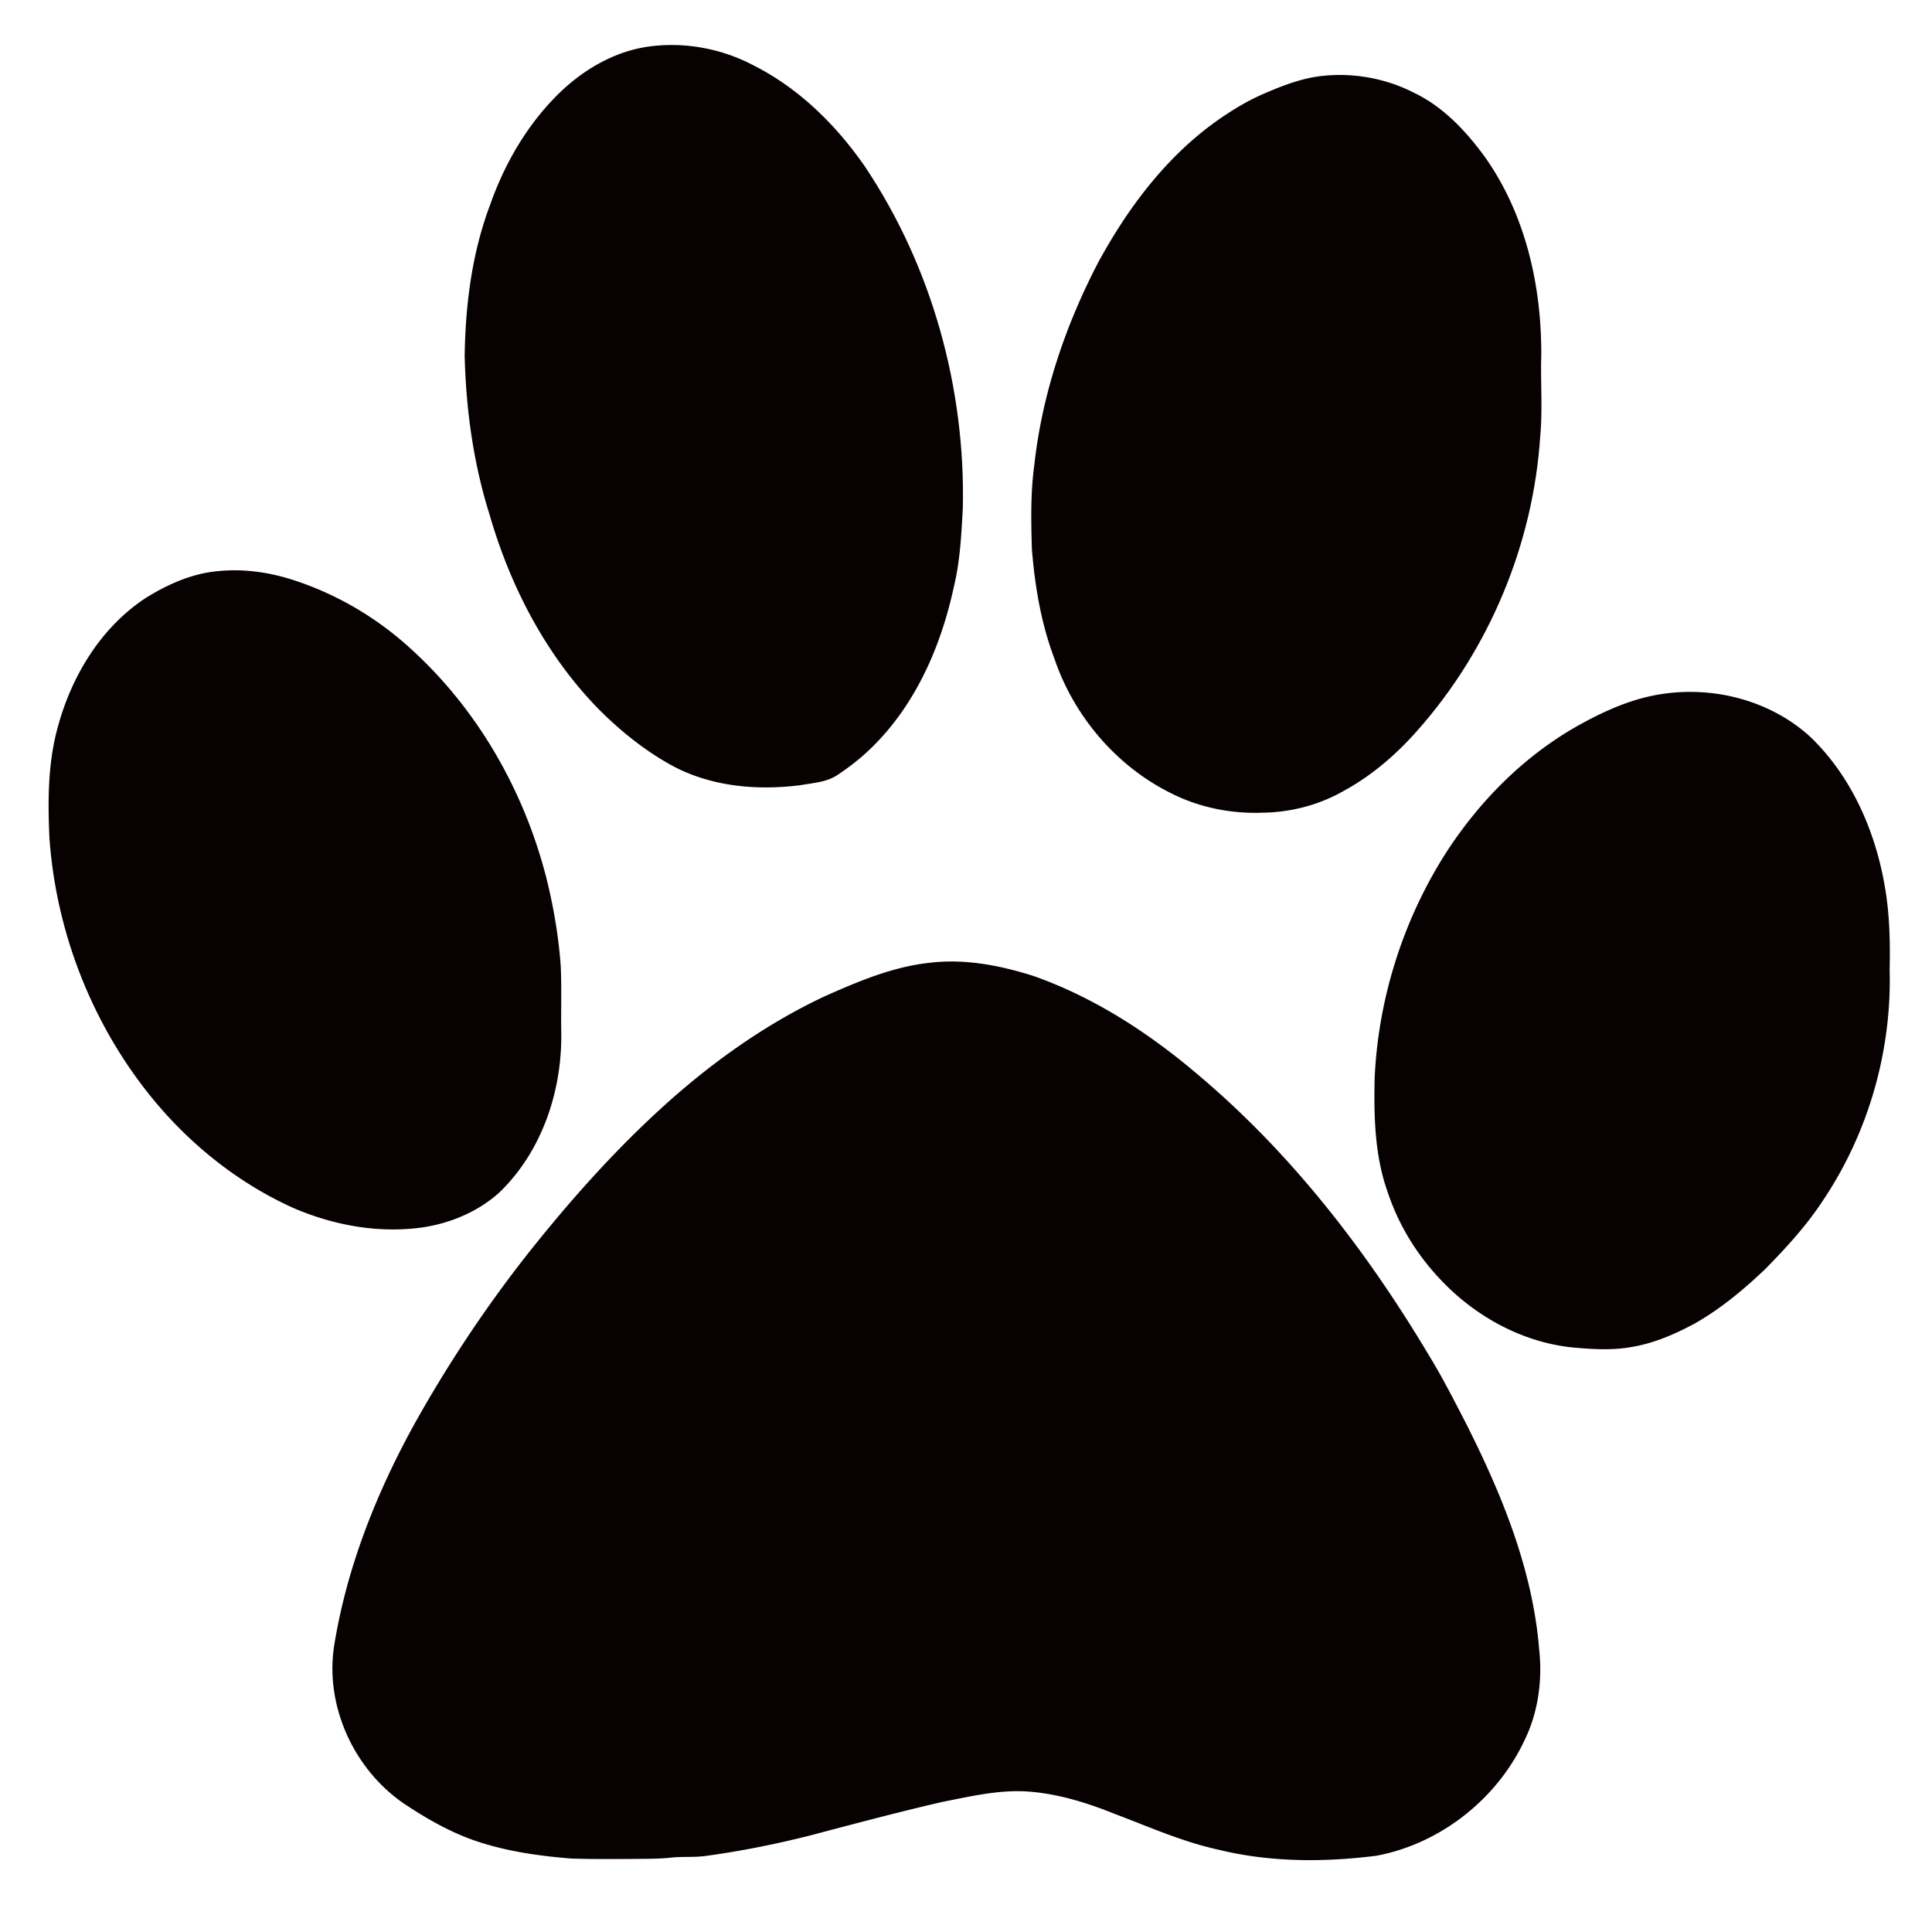 Paw Prints clipart #9, Download drawings